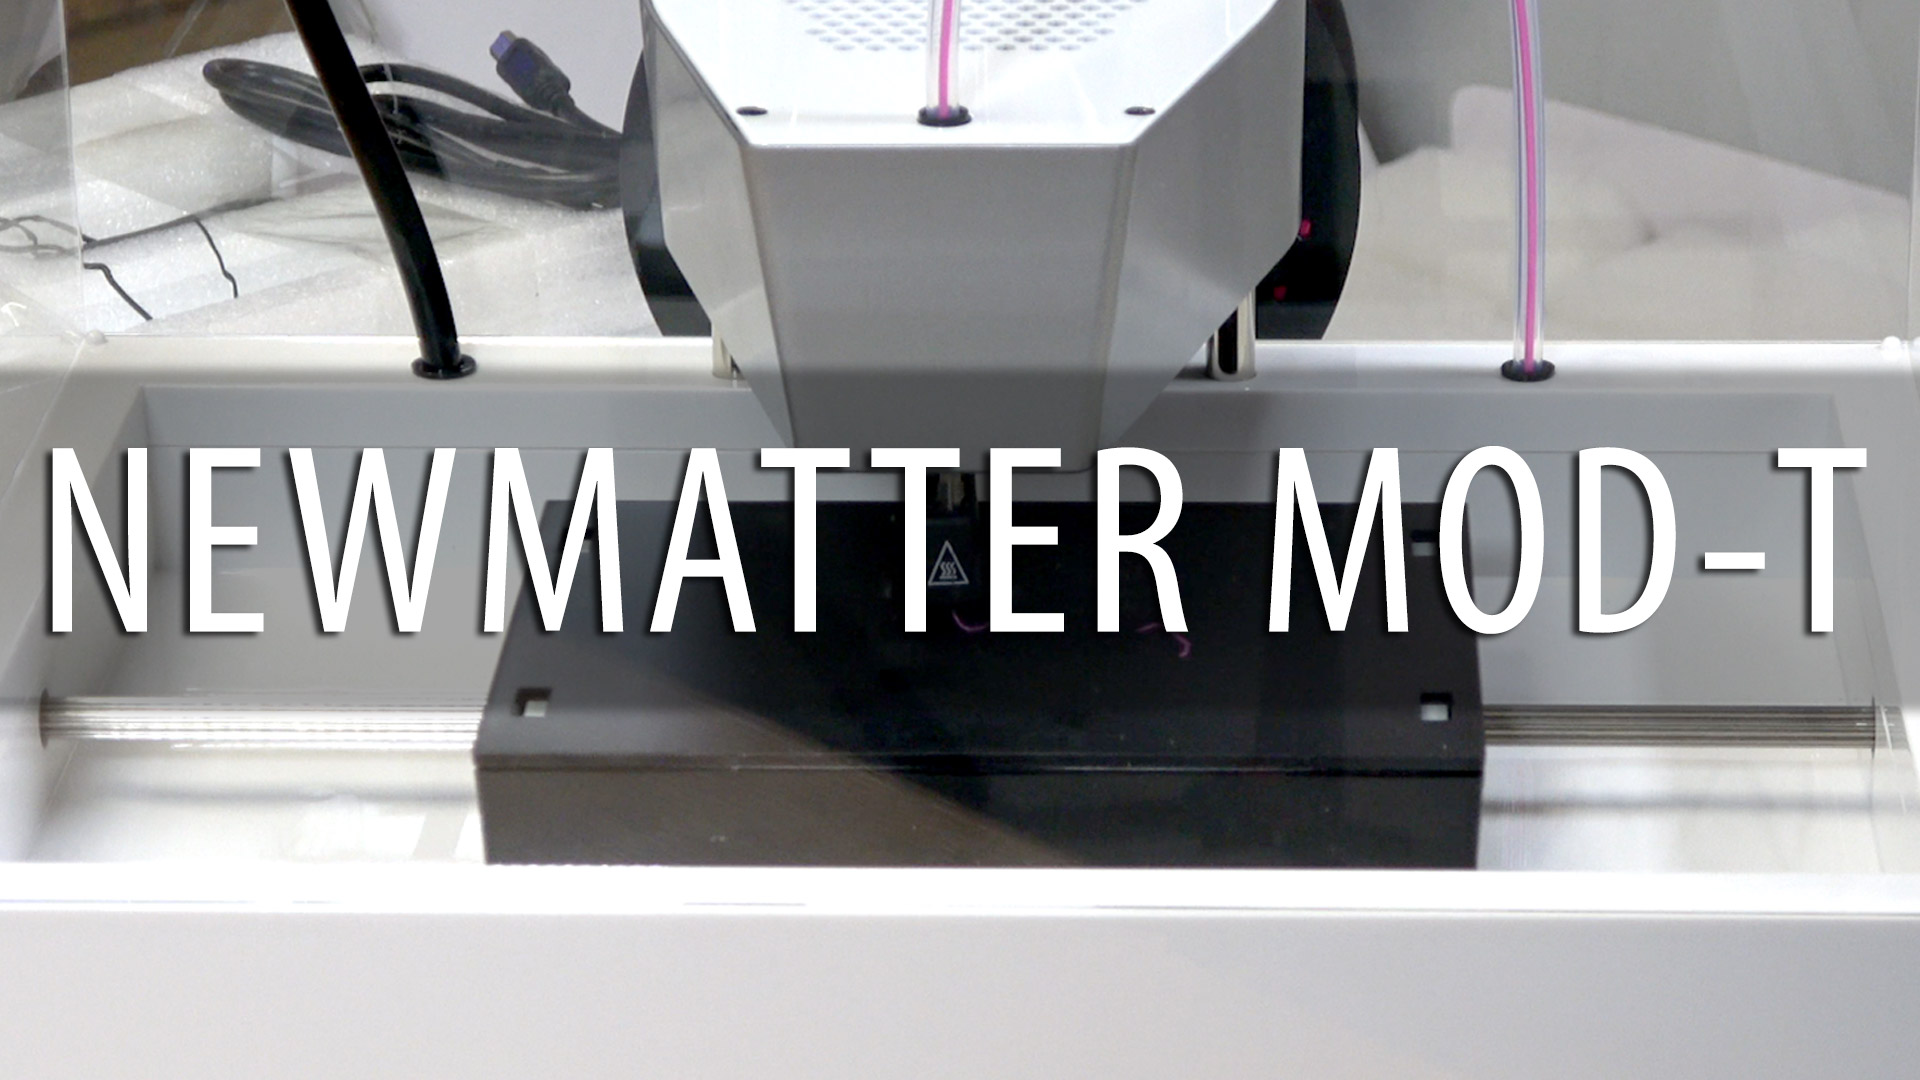 Is the NewMatter MOD-t 3D Printer Any Good?